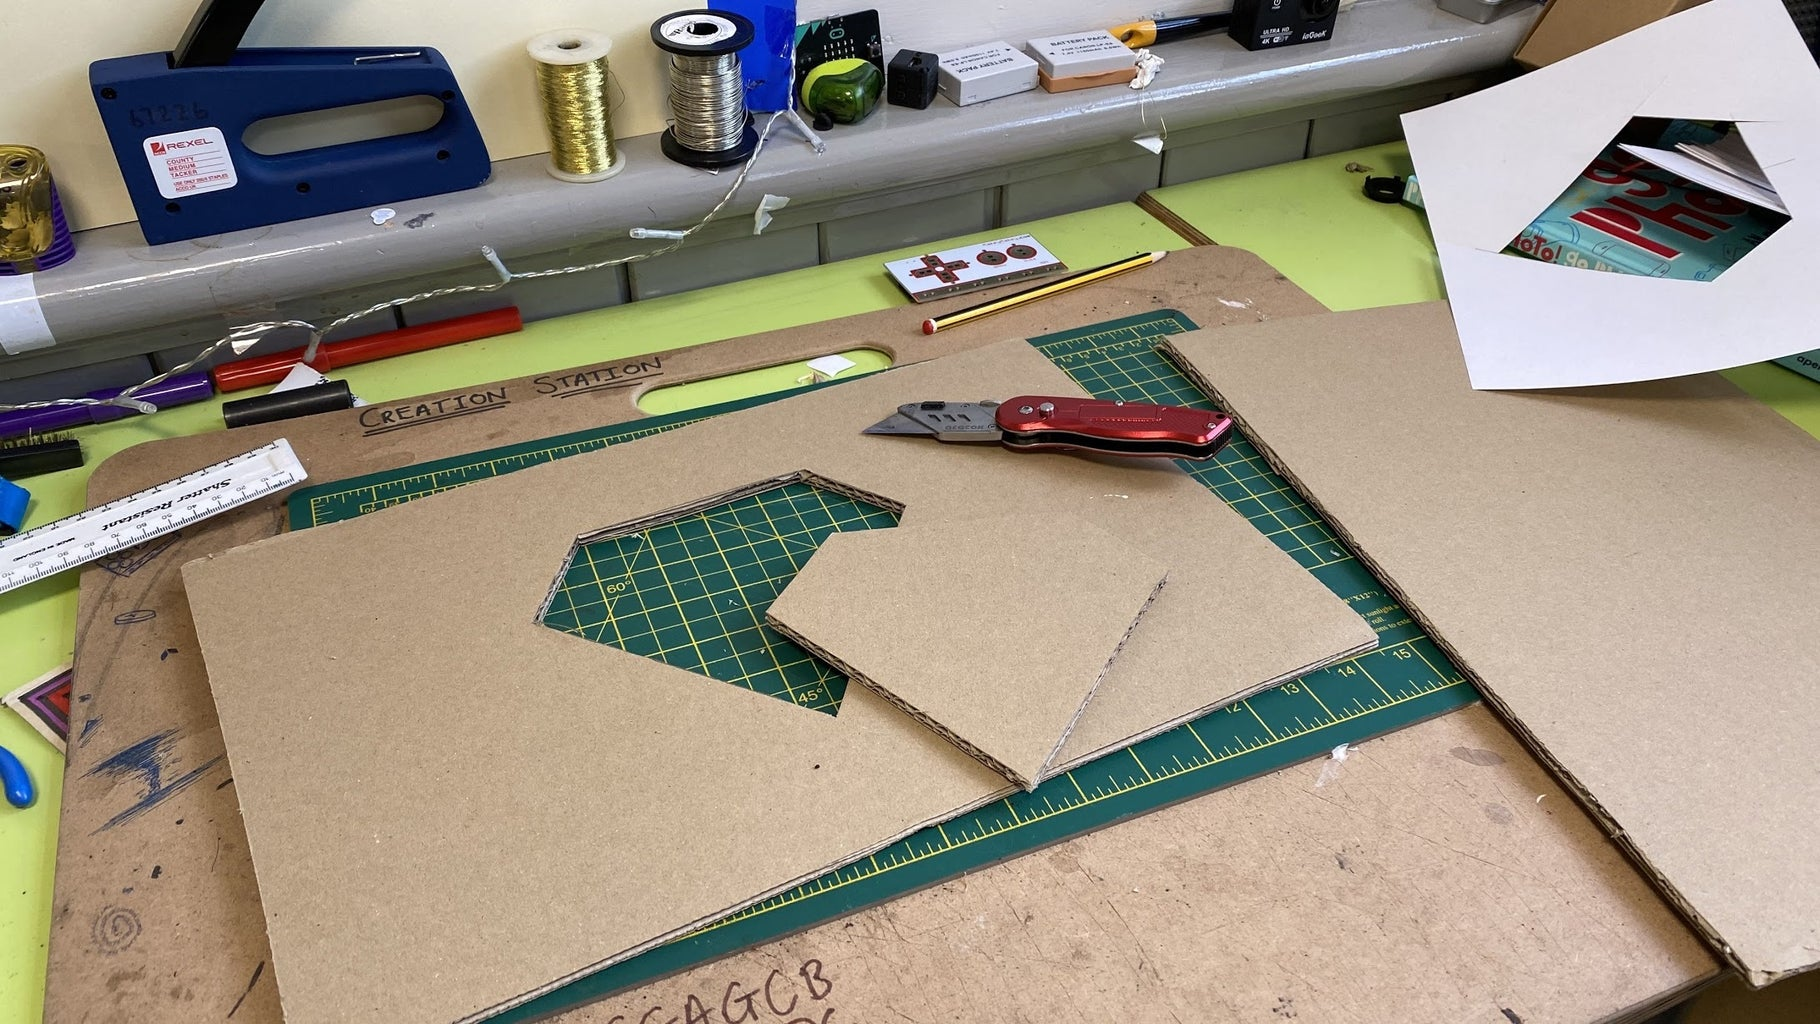 Getting Started - Creating the Board